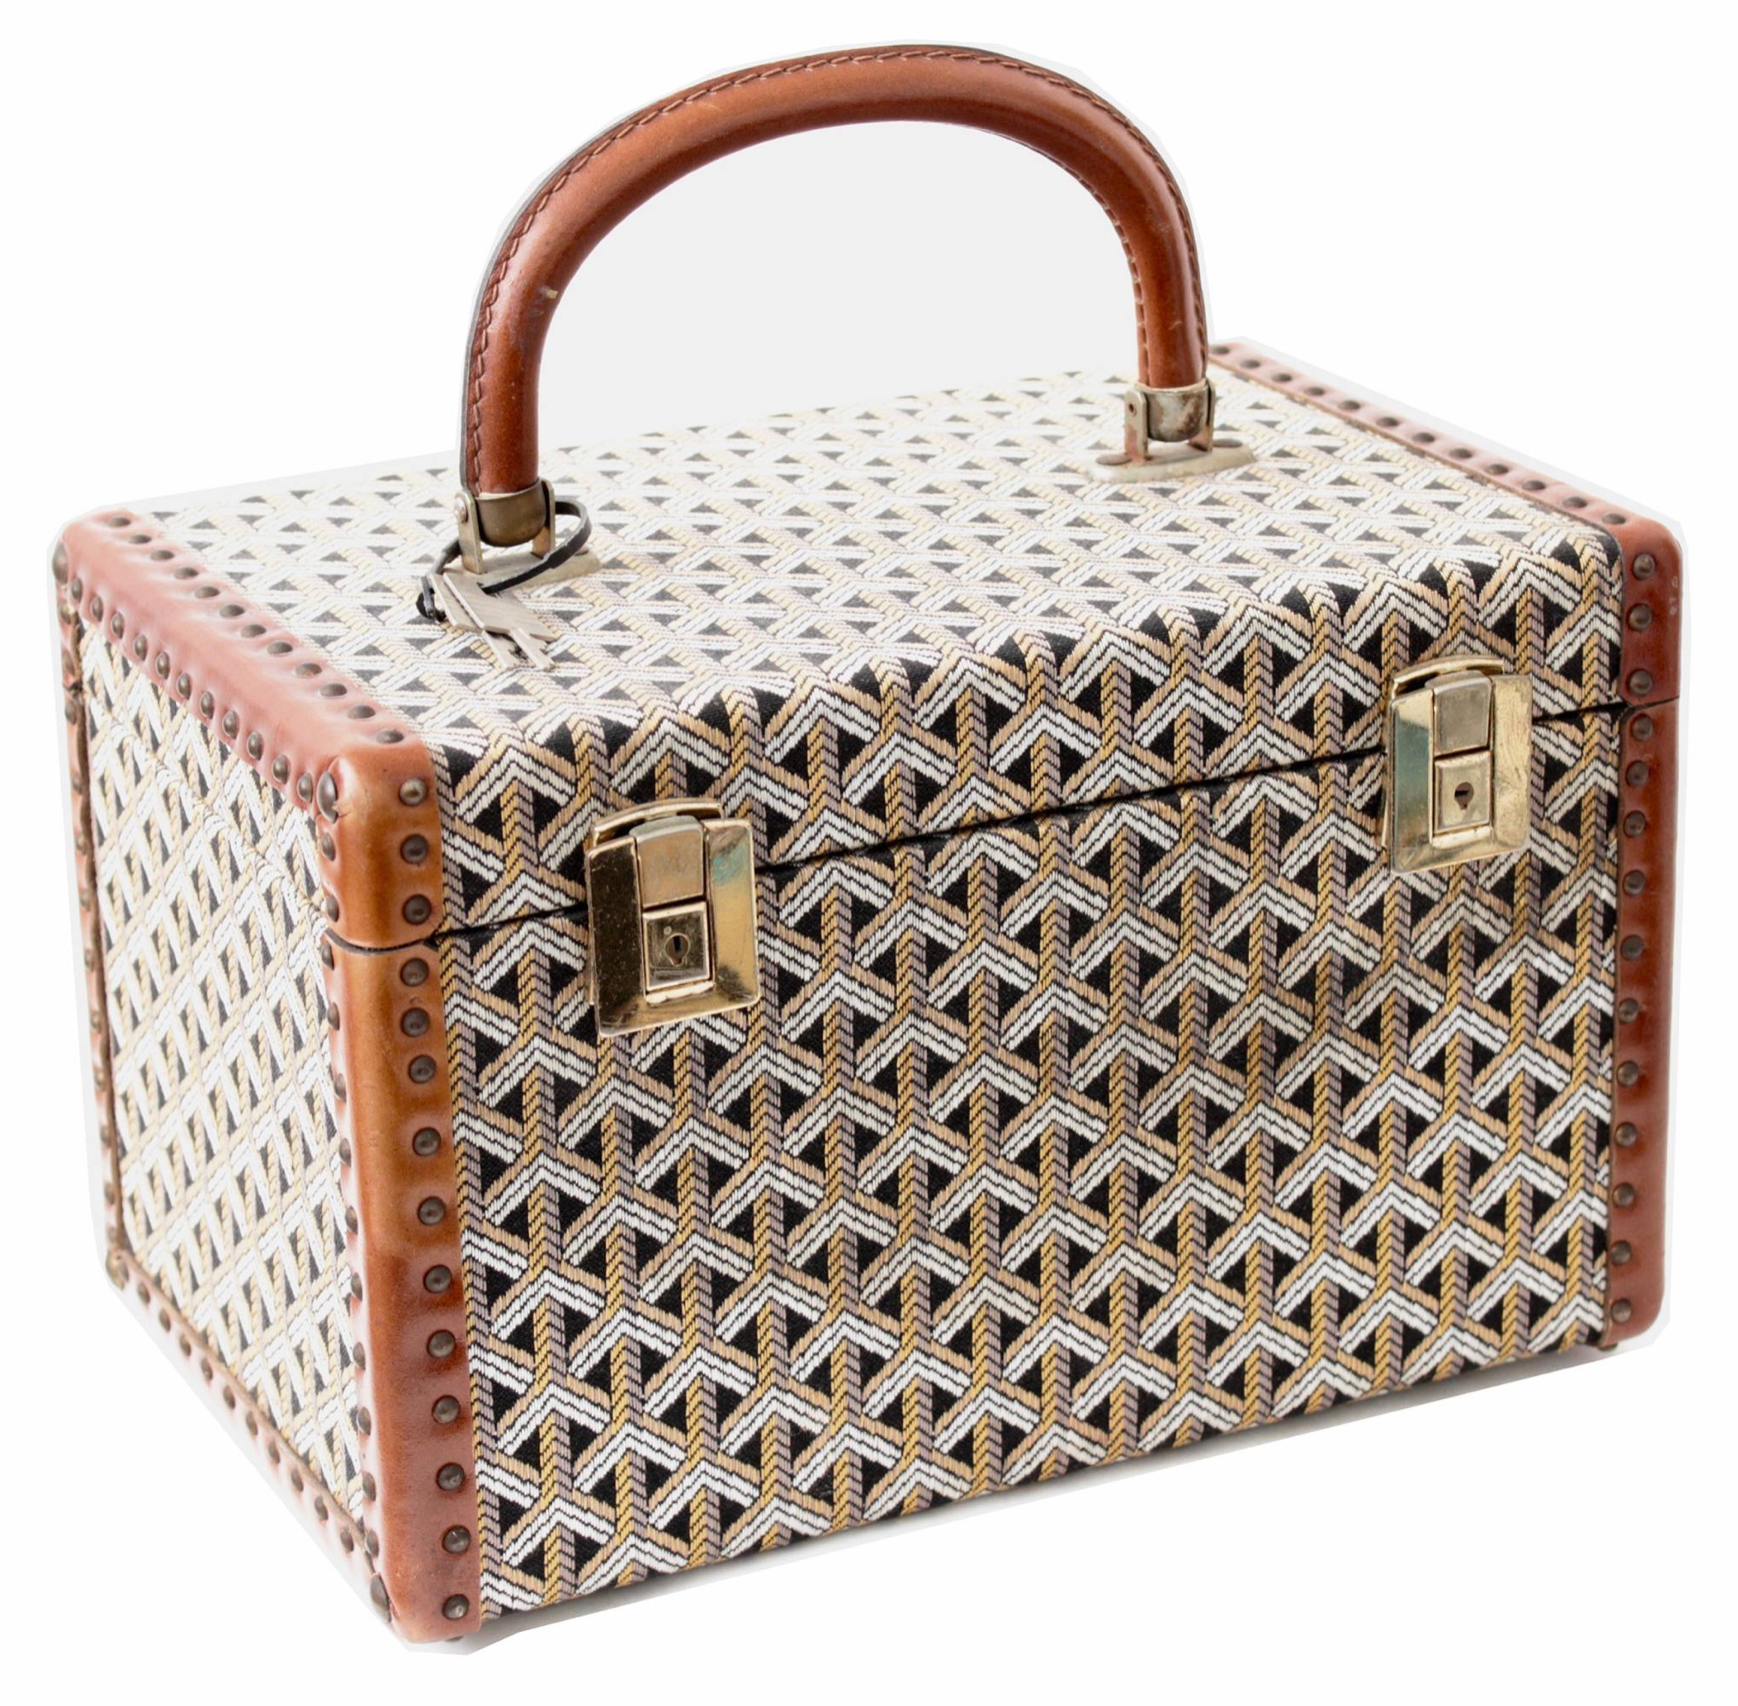 Tbt Goyard Train Case From The 50s Sold A While Back But Always Repost Worthy Vintage Goyard Traincases Luggage Style Beauty Bag Vintage Bags Goyard